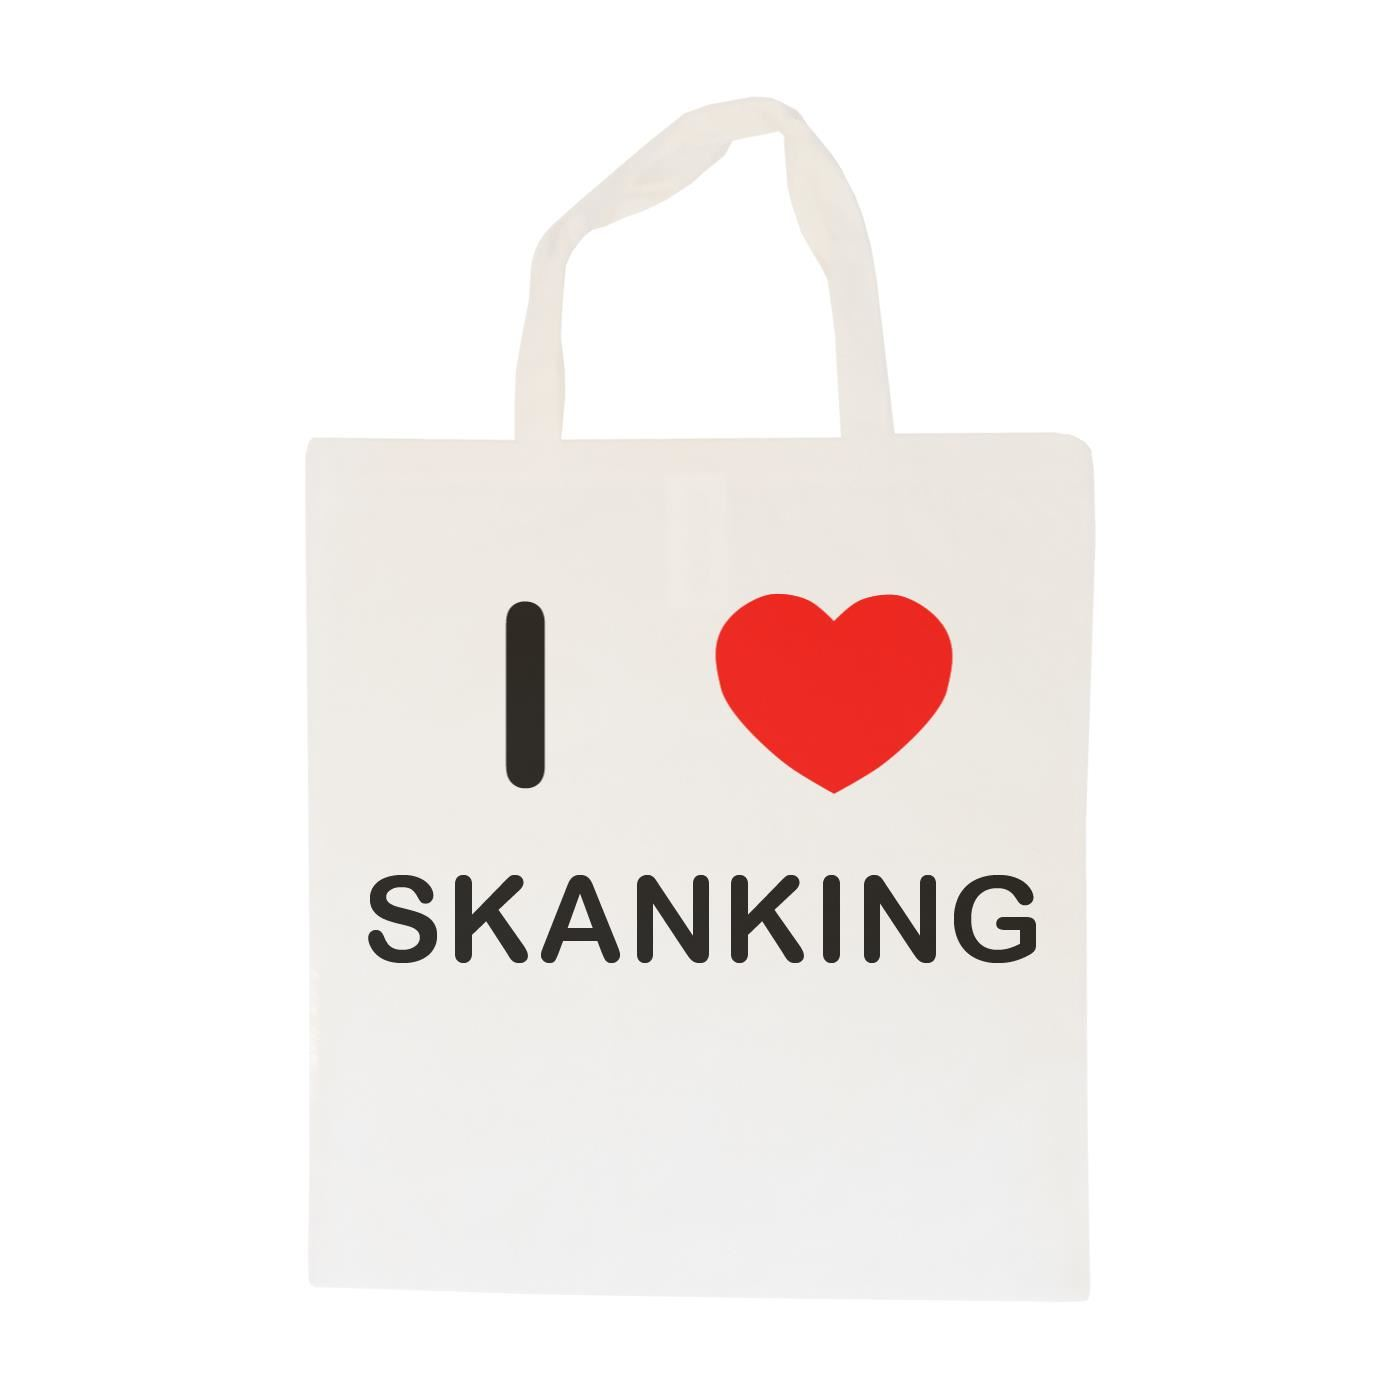 I Love Skanking - Cotton Bag | Size choice Tote, Shopper or Sling